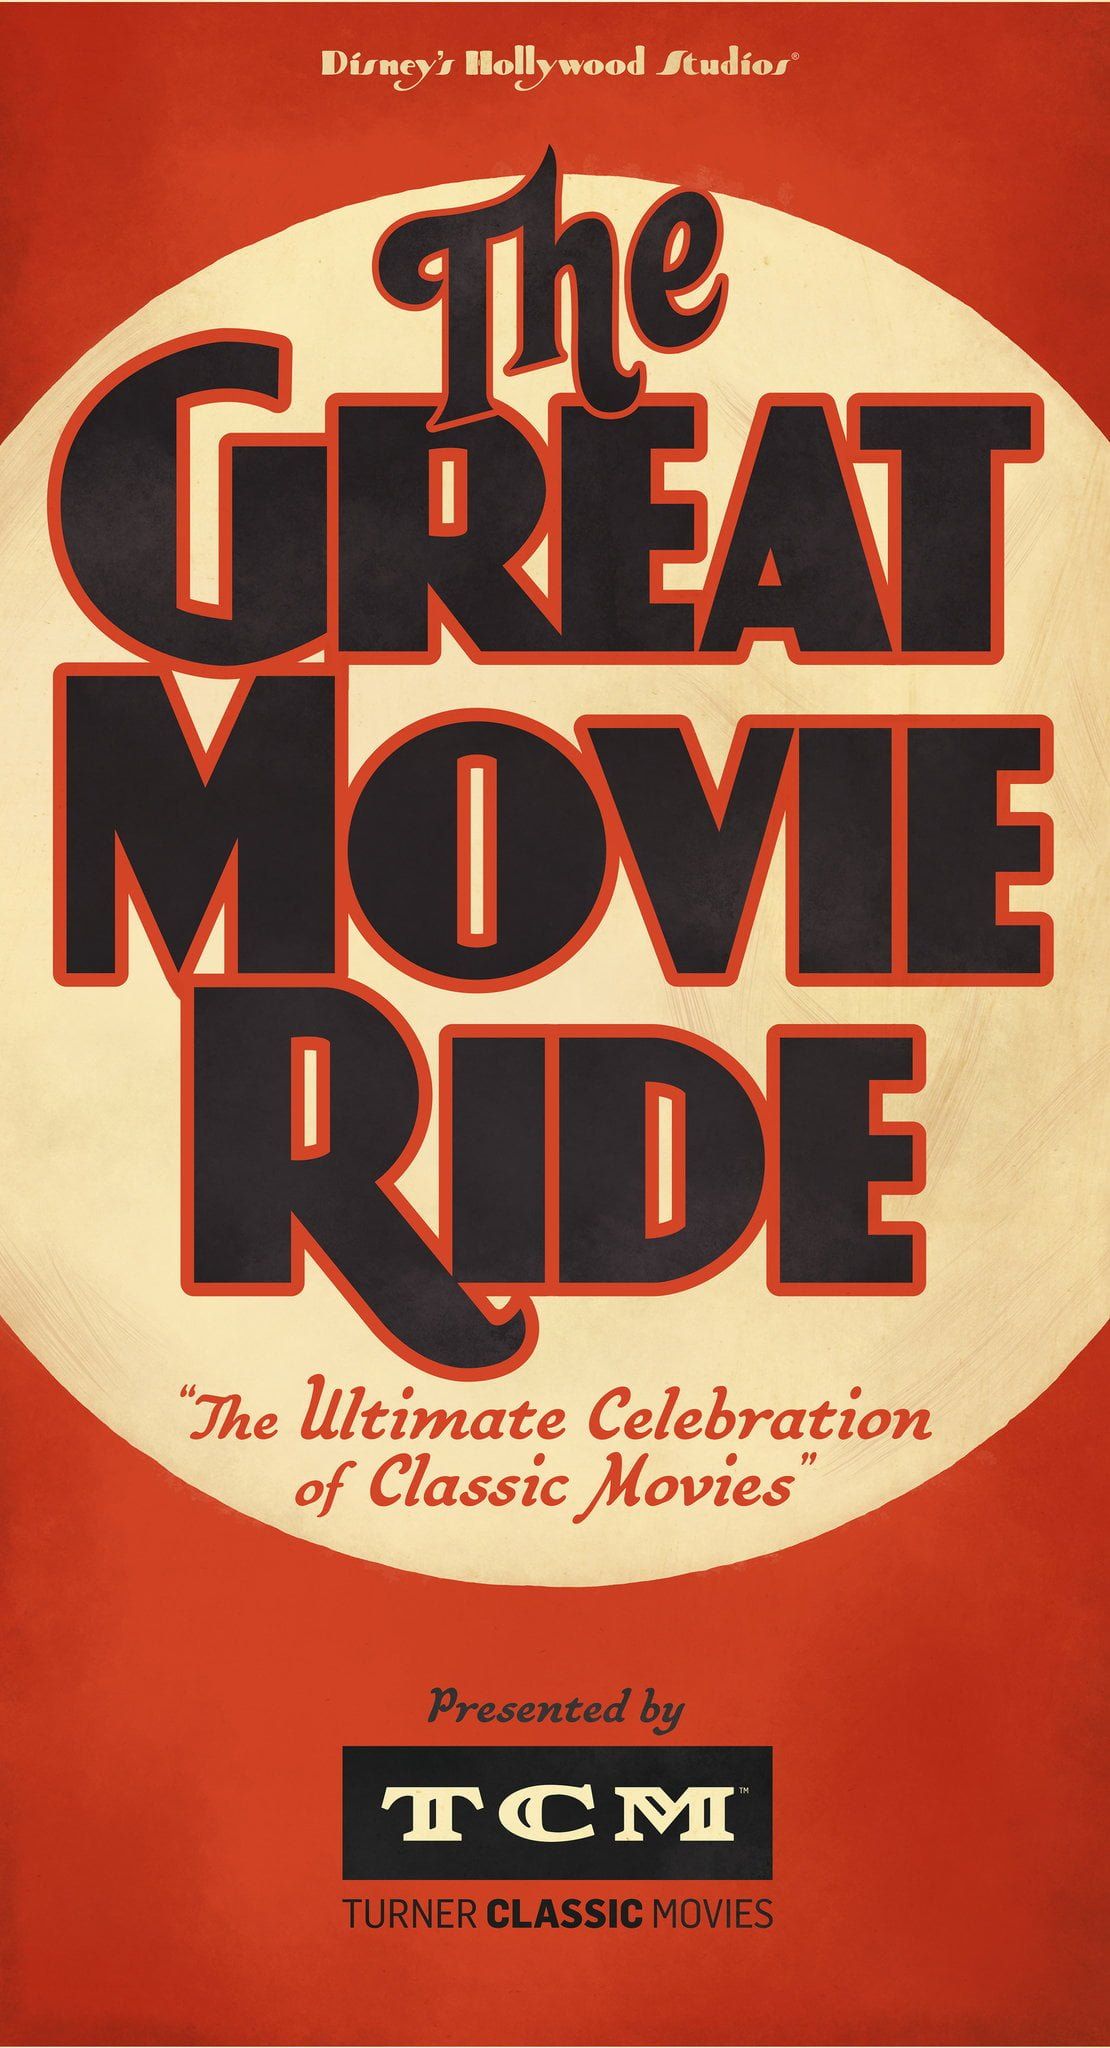 ride movie tcm disney movies classic studios hollywood attraction turner why sponsor matters